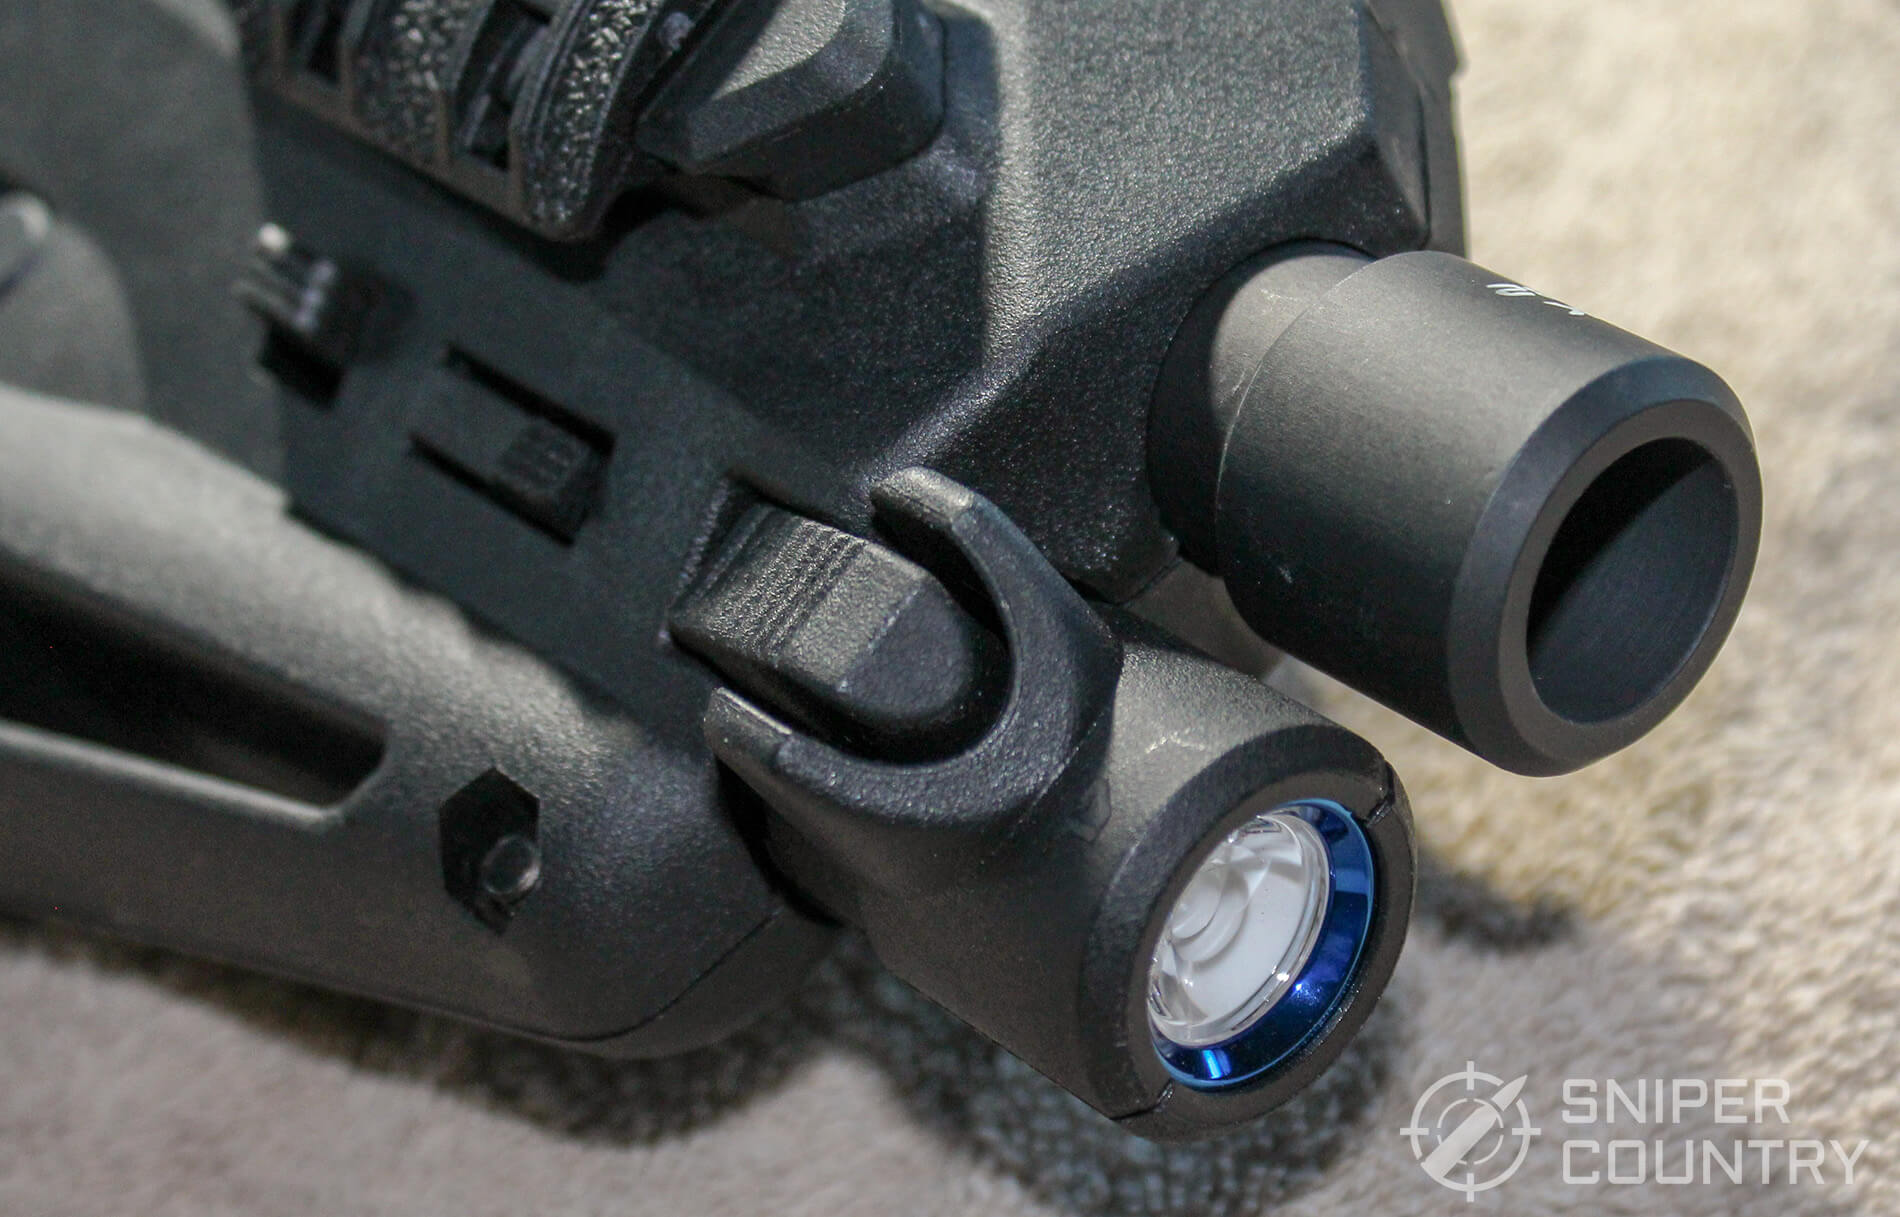 CAA Micro-RONI muzzle light